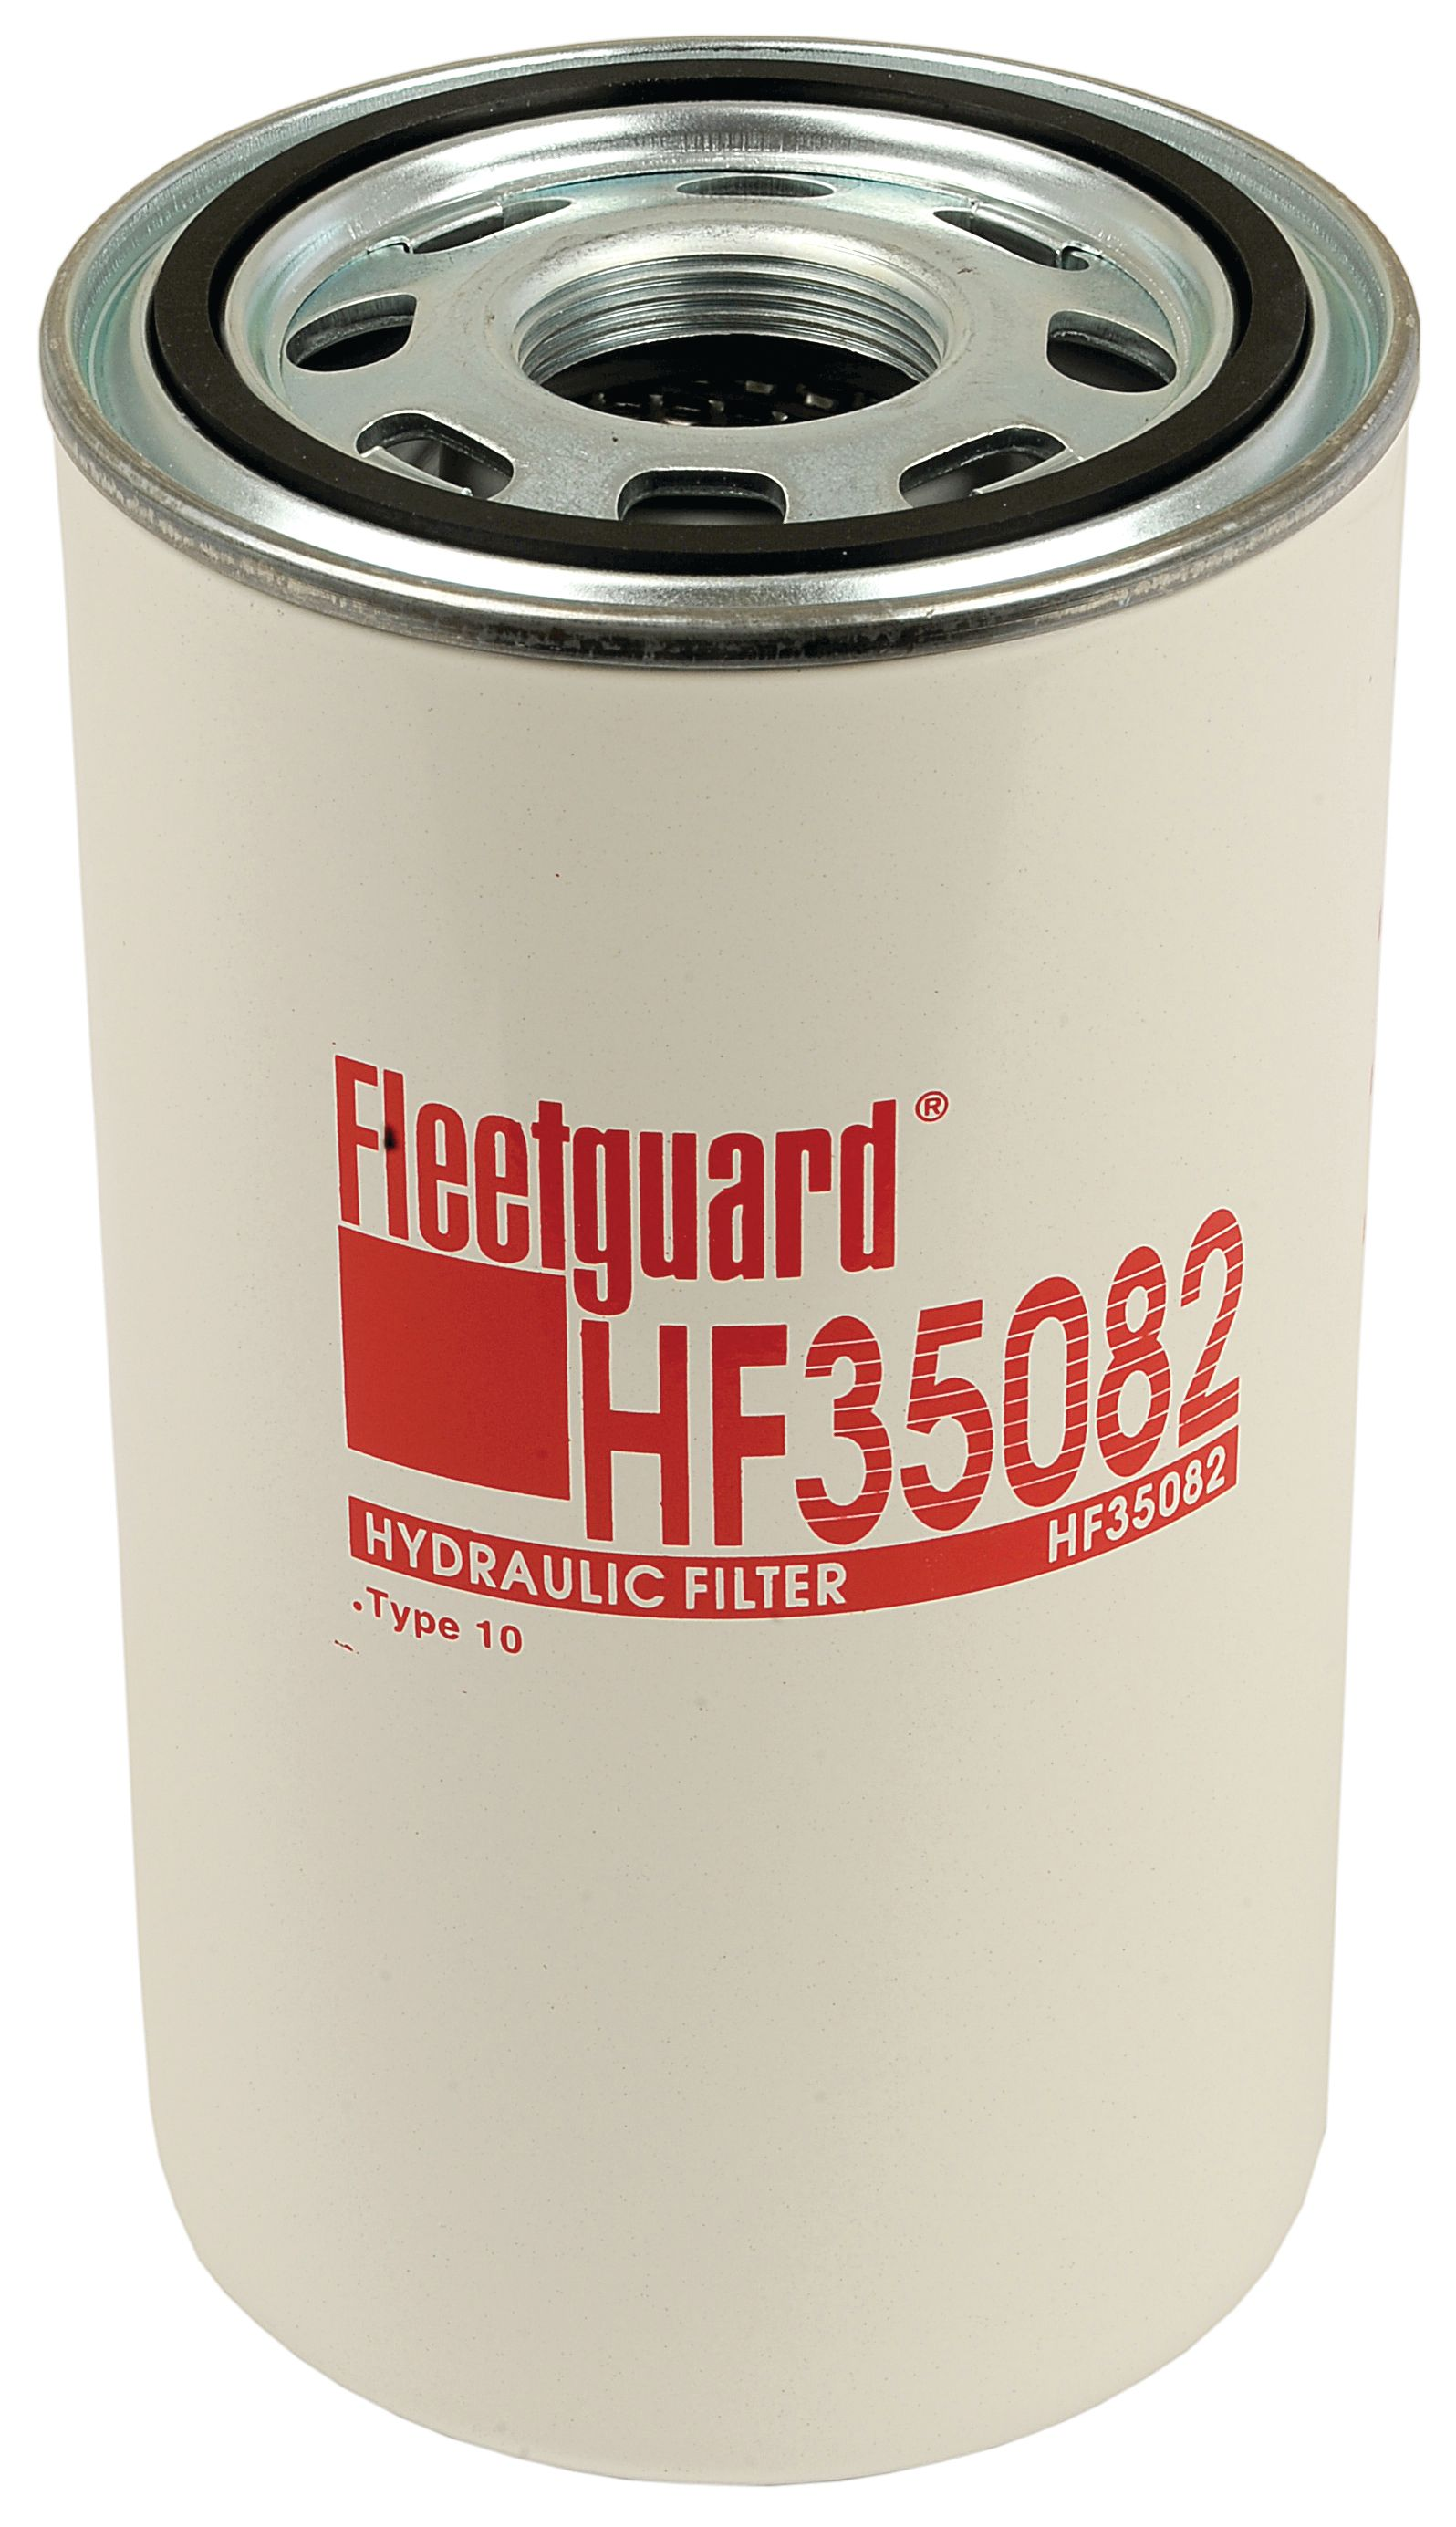 MANITOU HYDRAULIC FILTER HF35082 109231